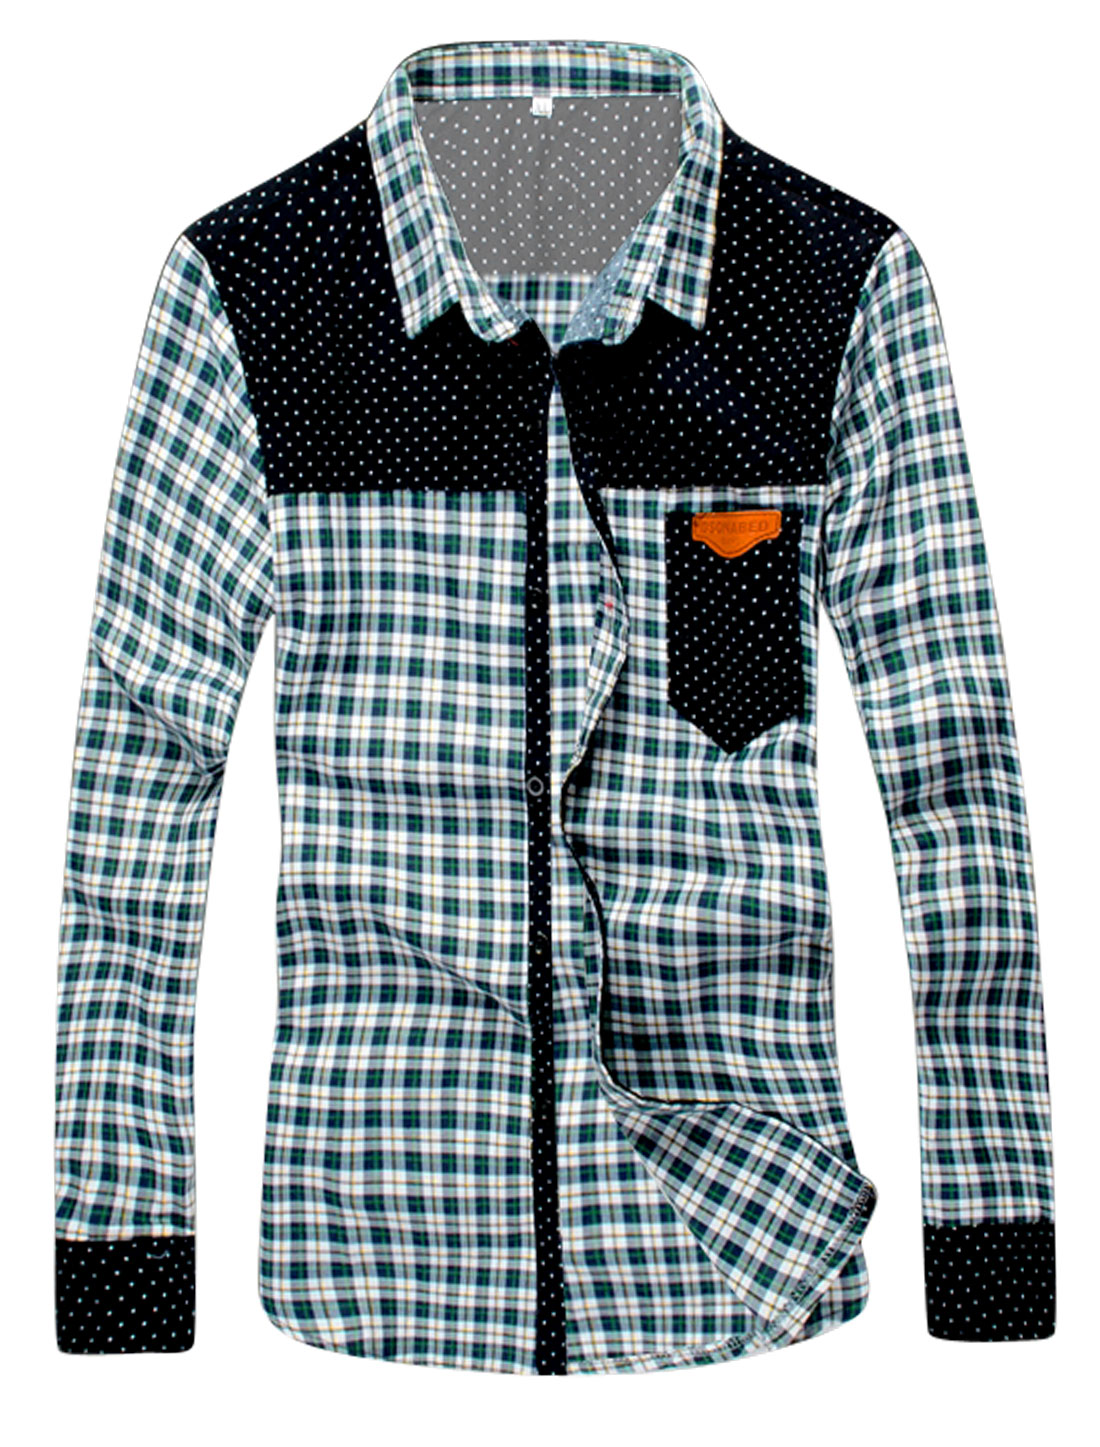 Men Plaids Dots Spliced Button Closed Casual Shirt Green White S